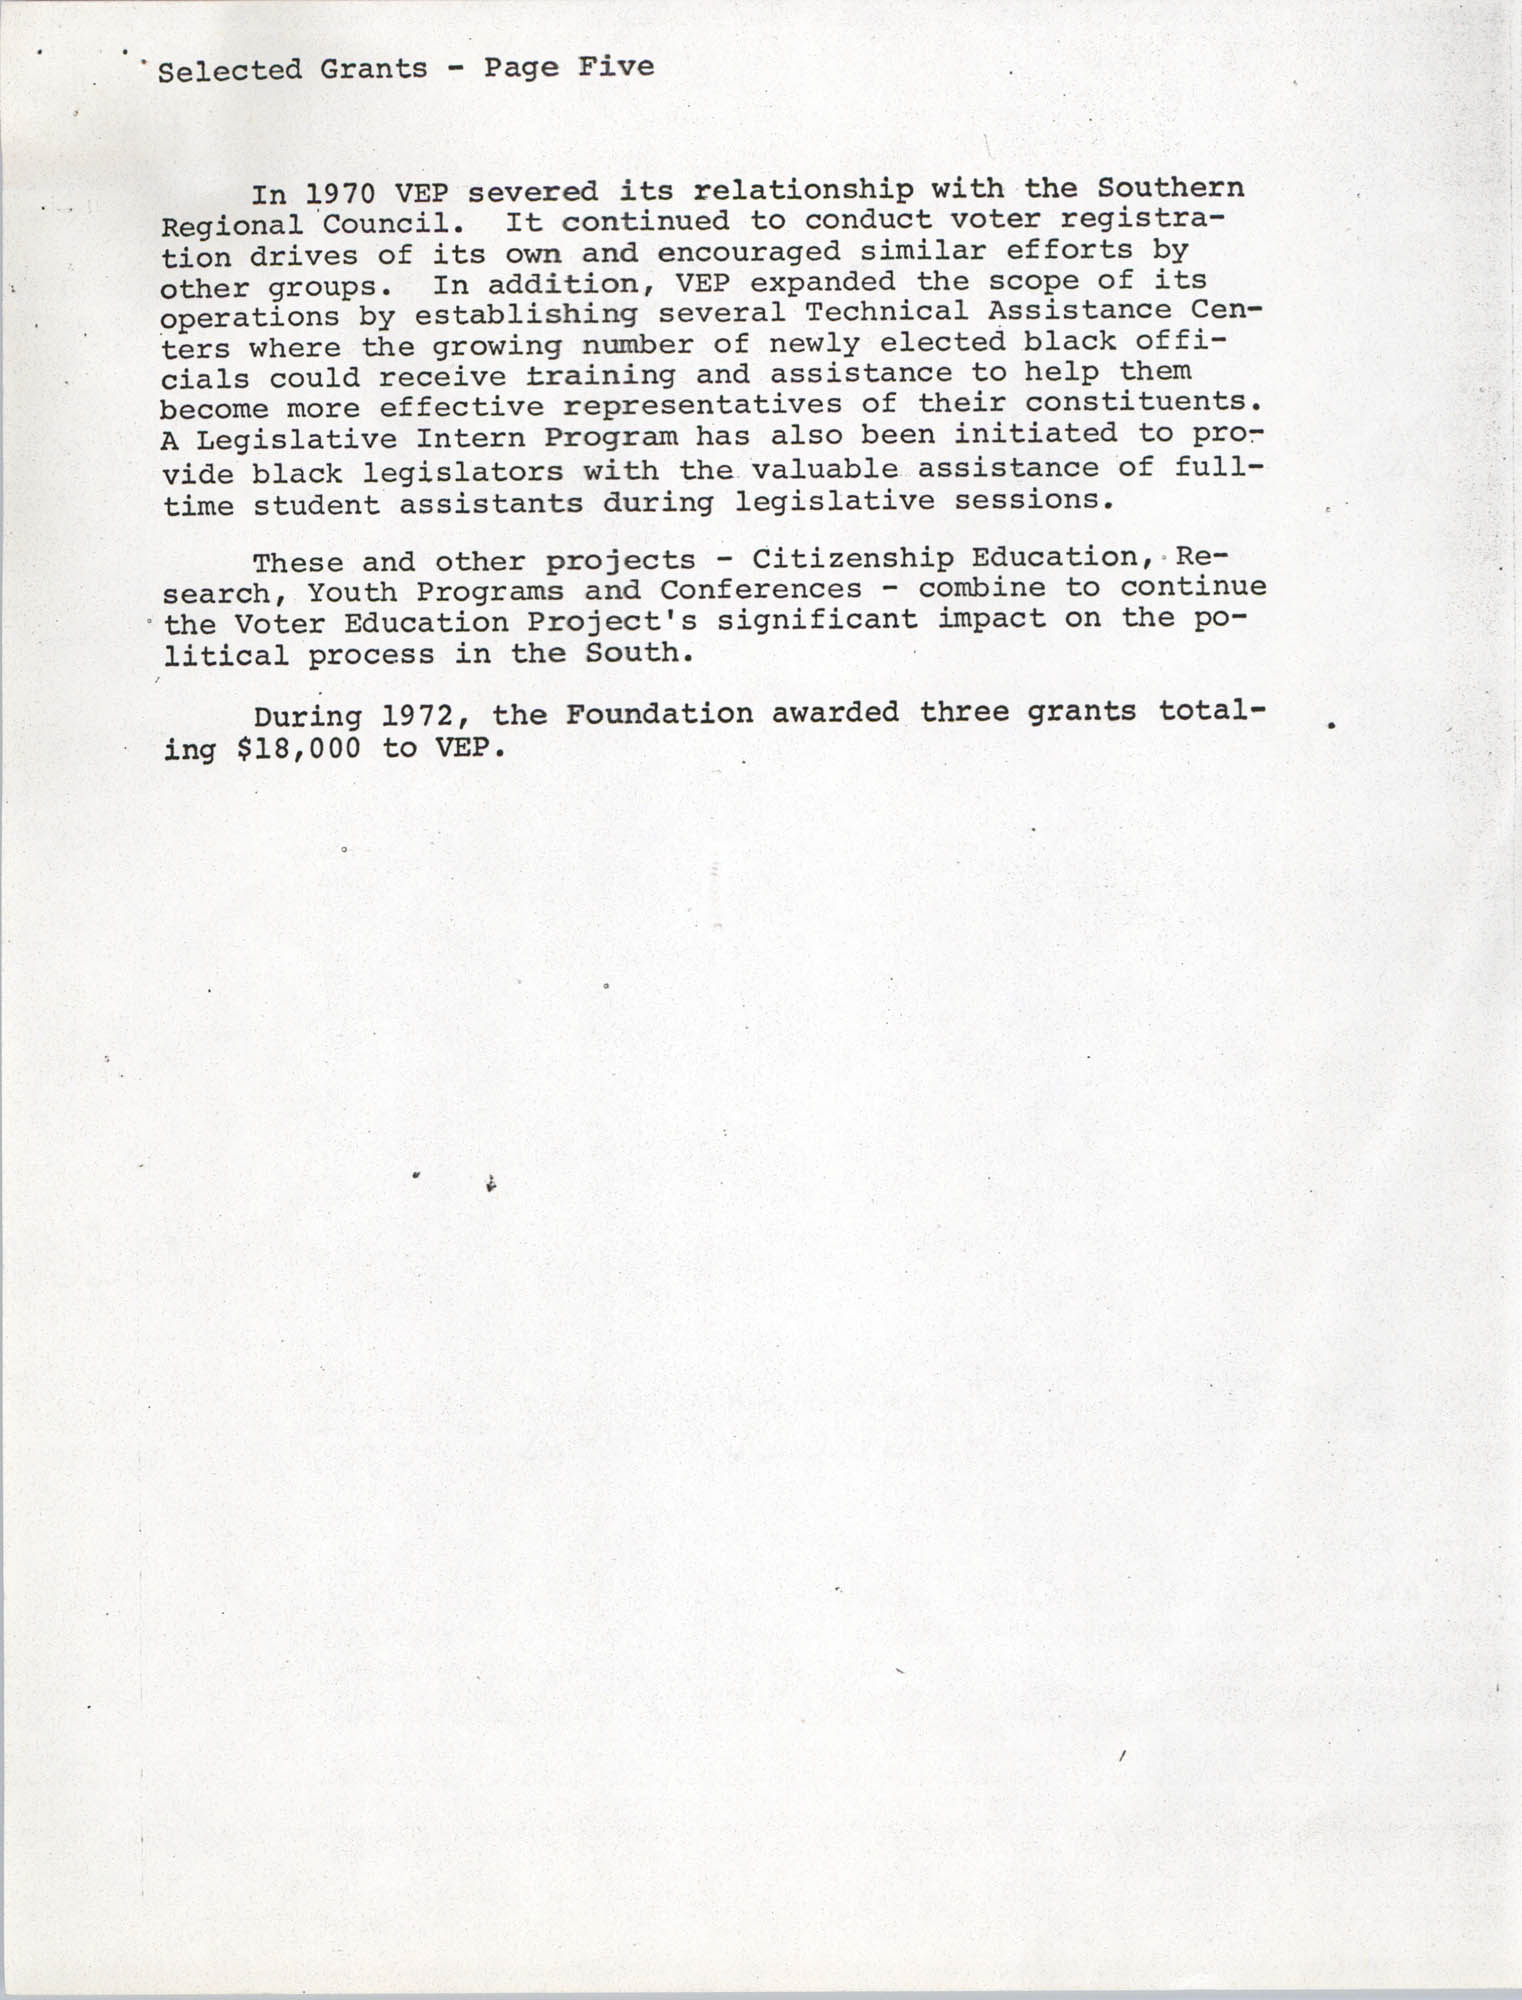 Josephine H. McIntosh Foundation Grant-Making Activities Report for 1972, Selected Grants Page 5